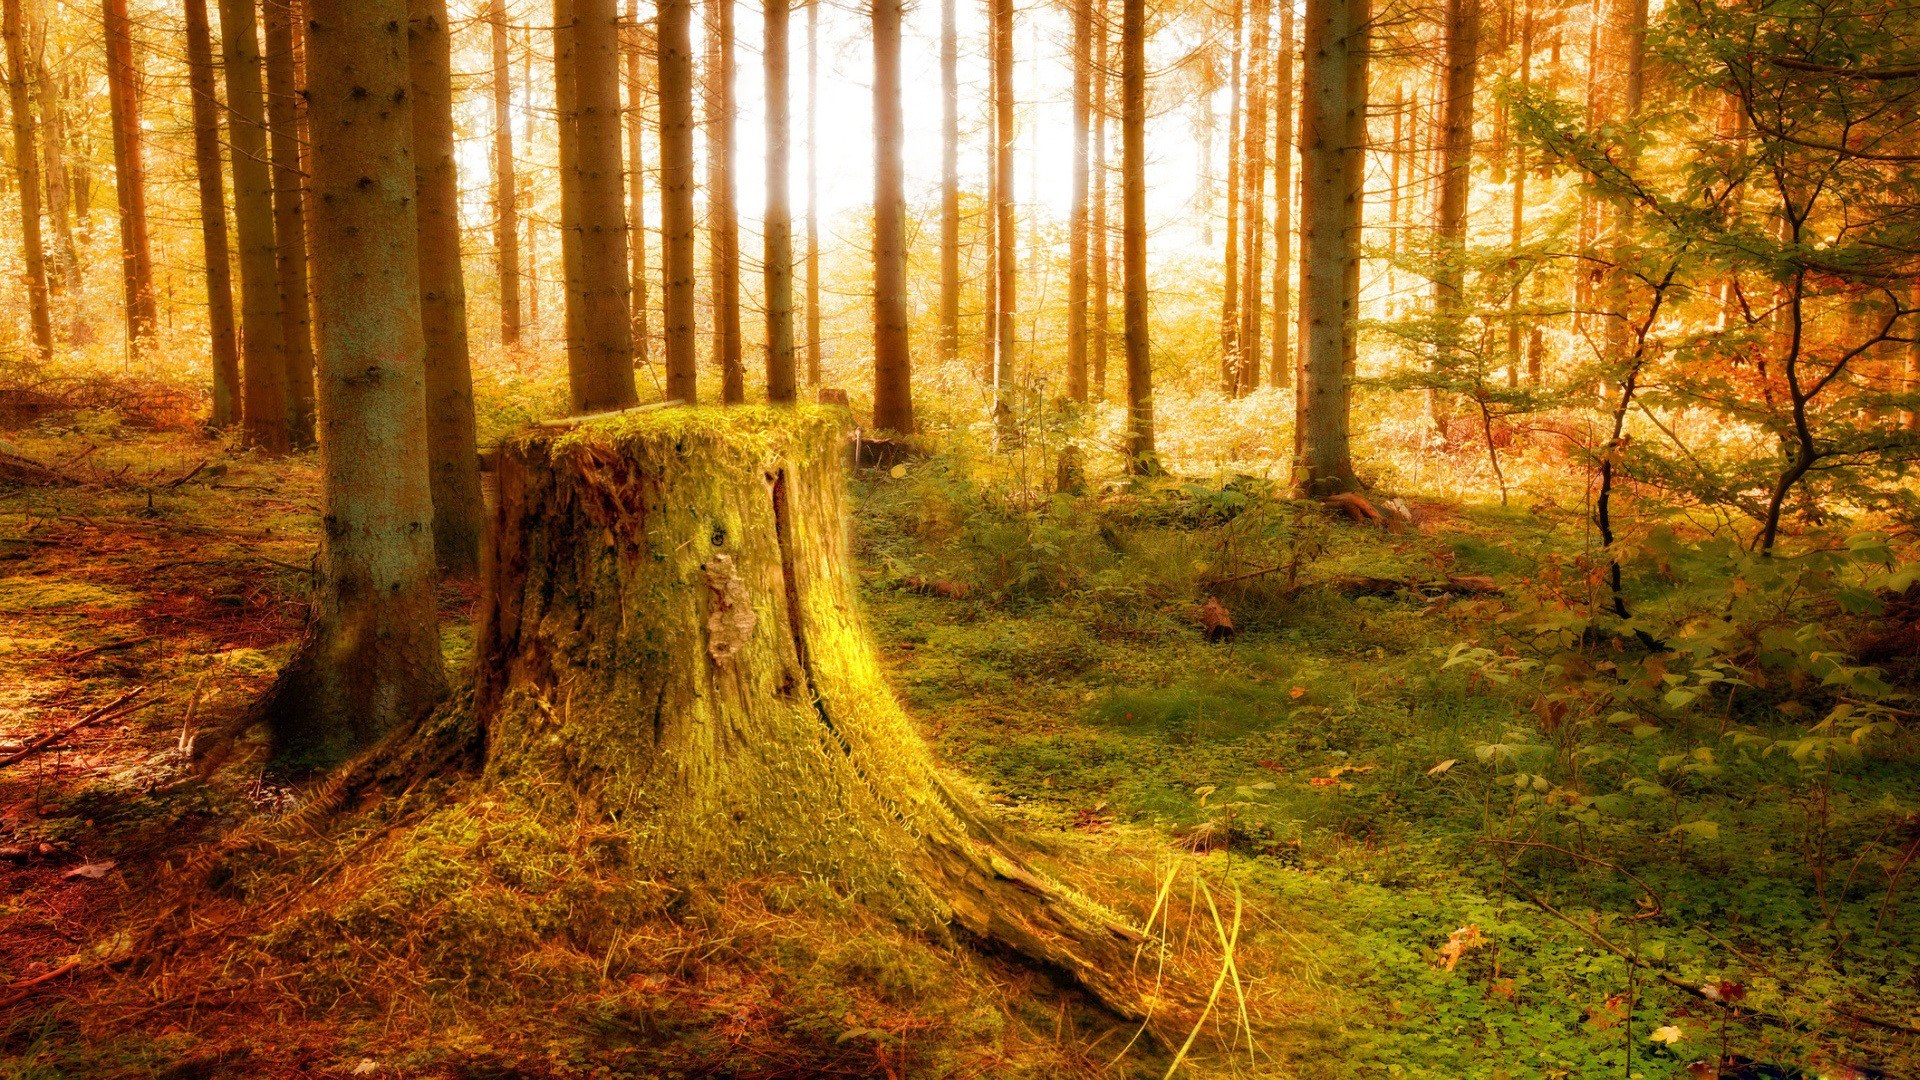 nature wallpapers hd free download,tree,natural landscape,nature,people in nature,forest